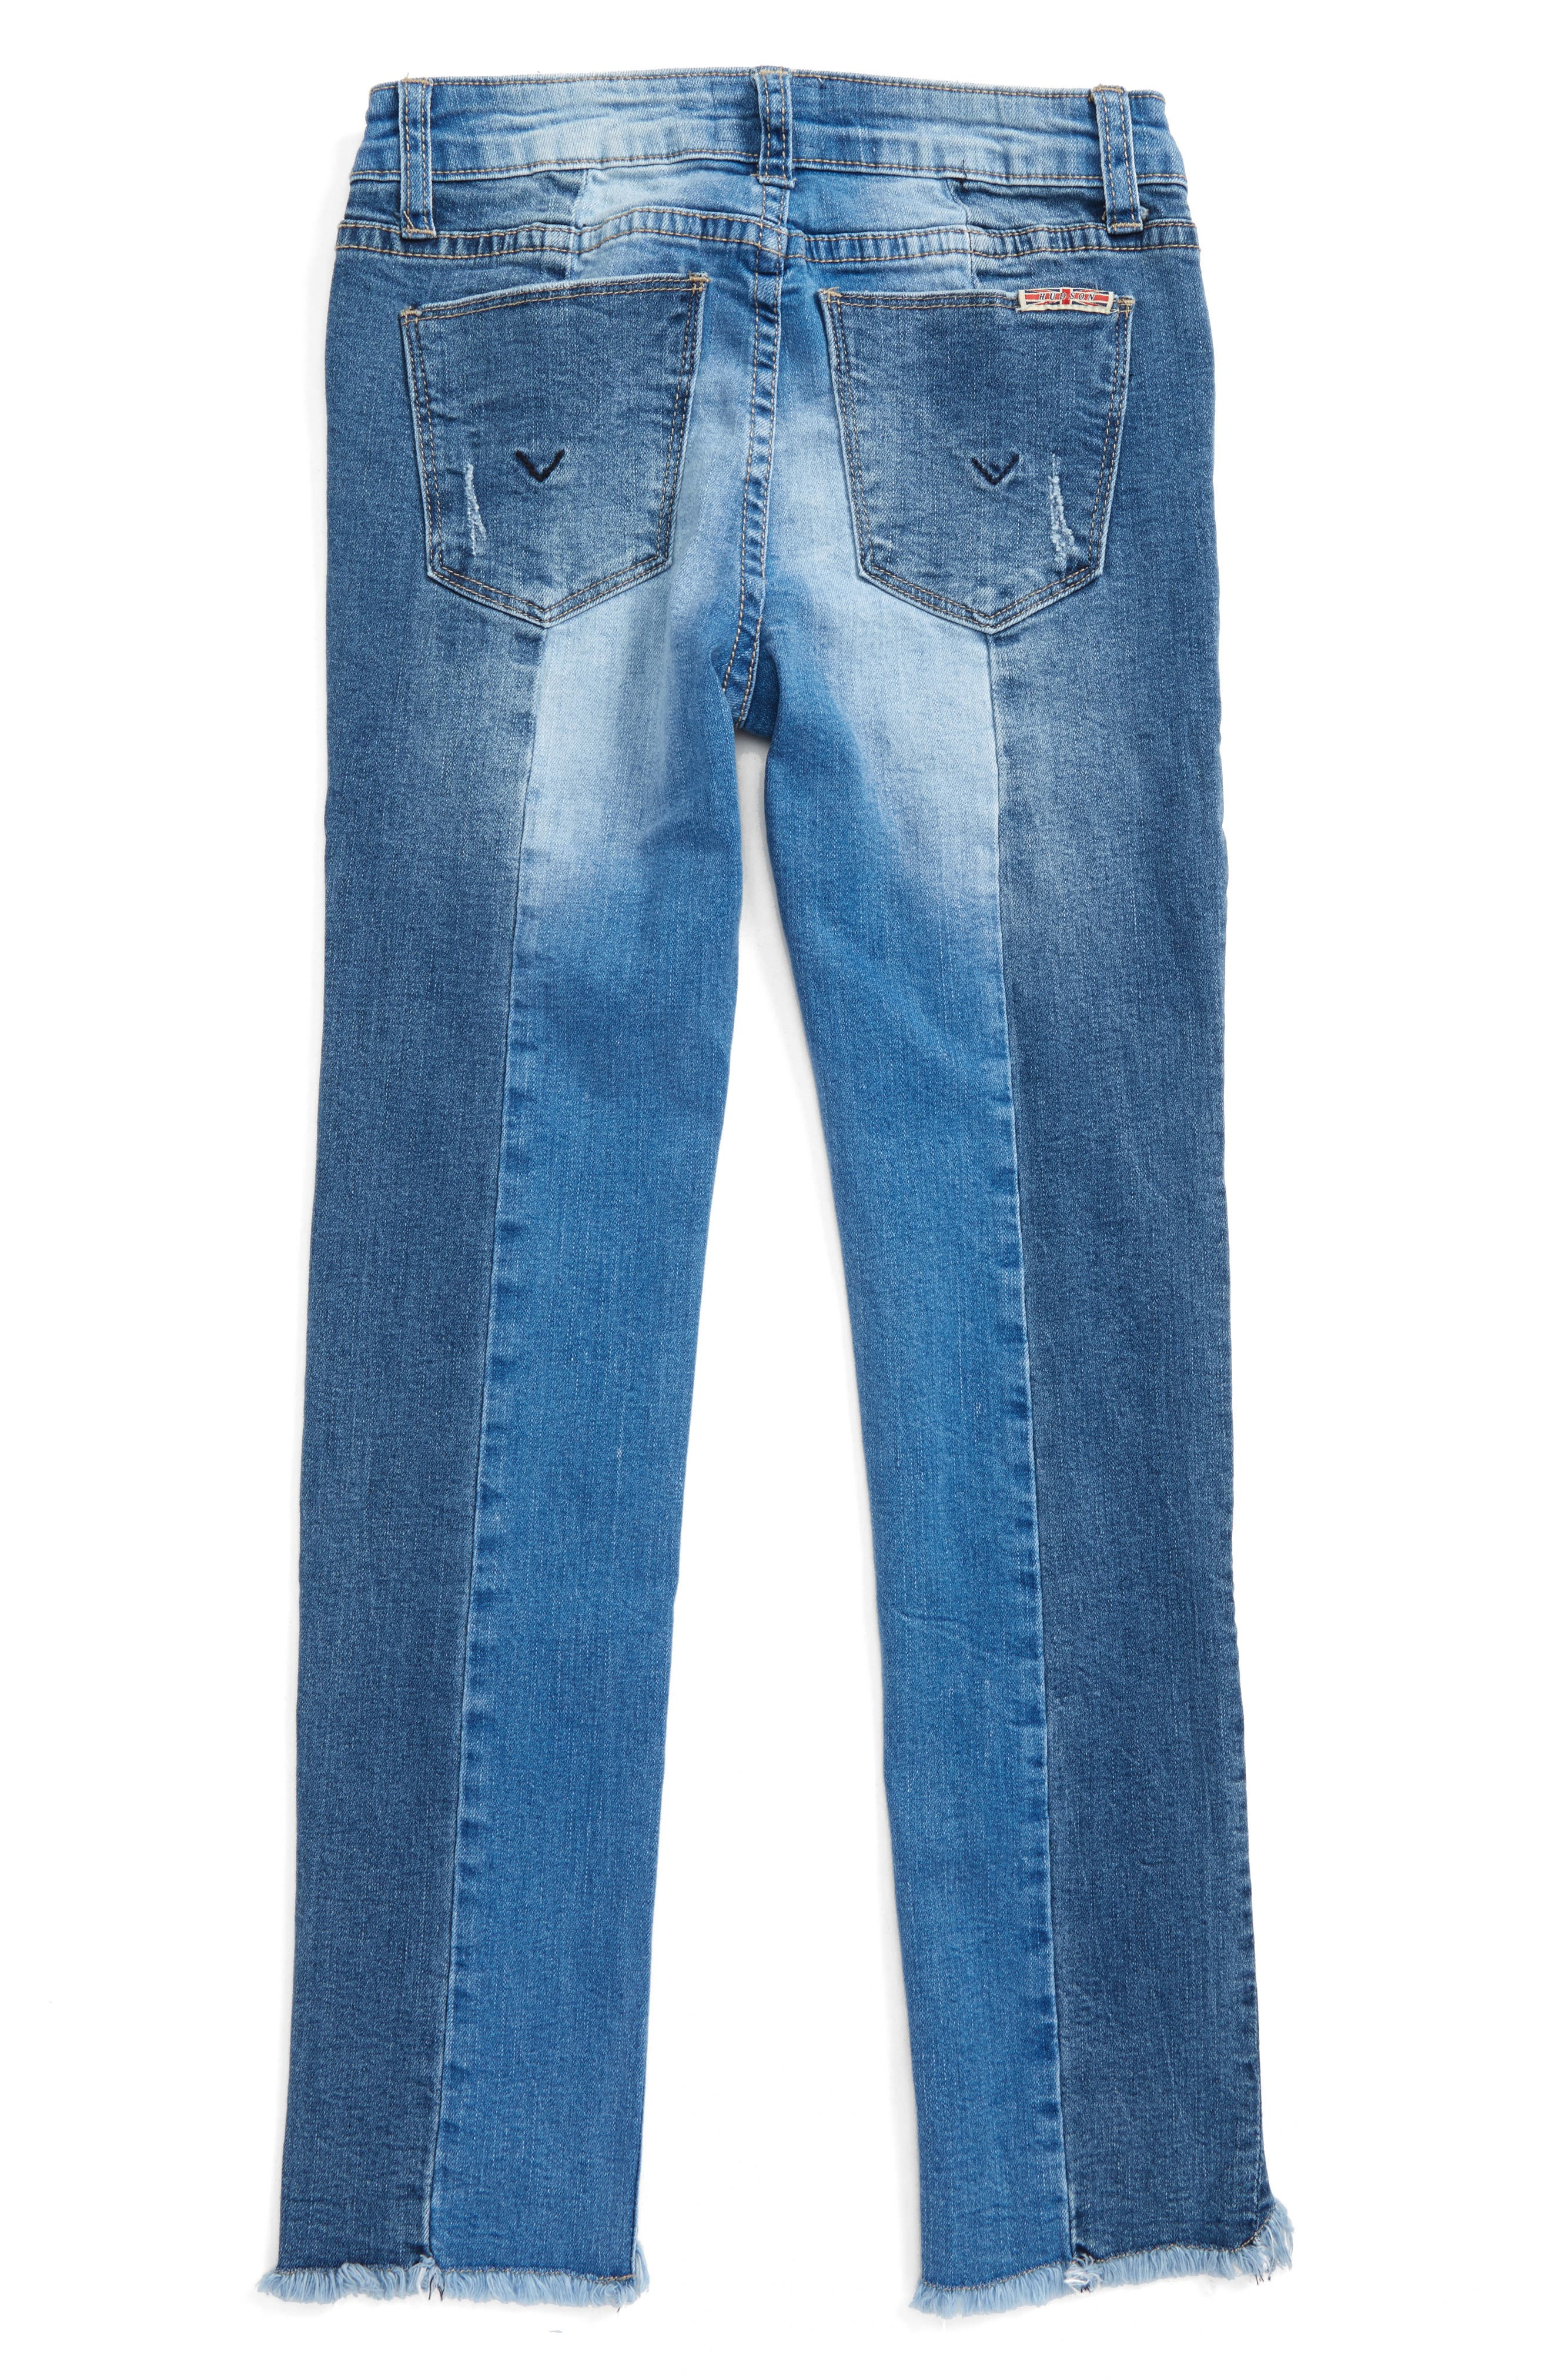 Redone Crop Skinny Jeans,                             Alternate thumbnail 2, color,                             483